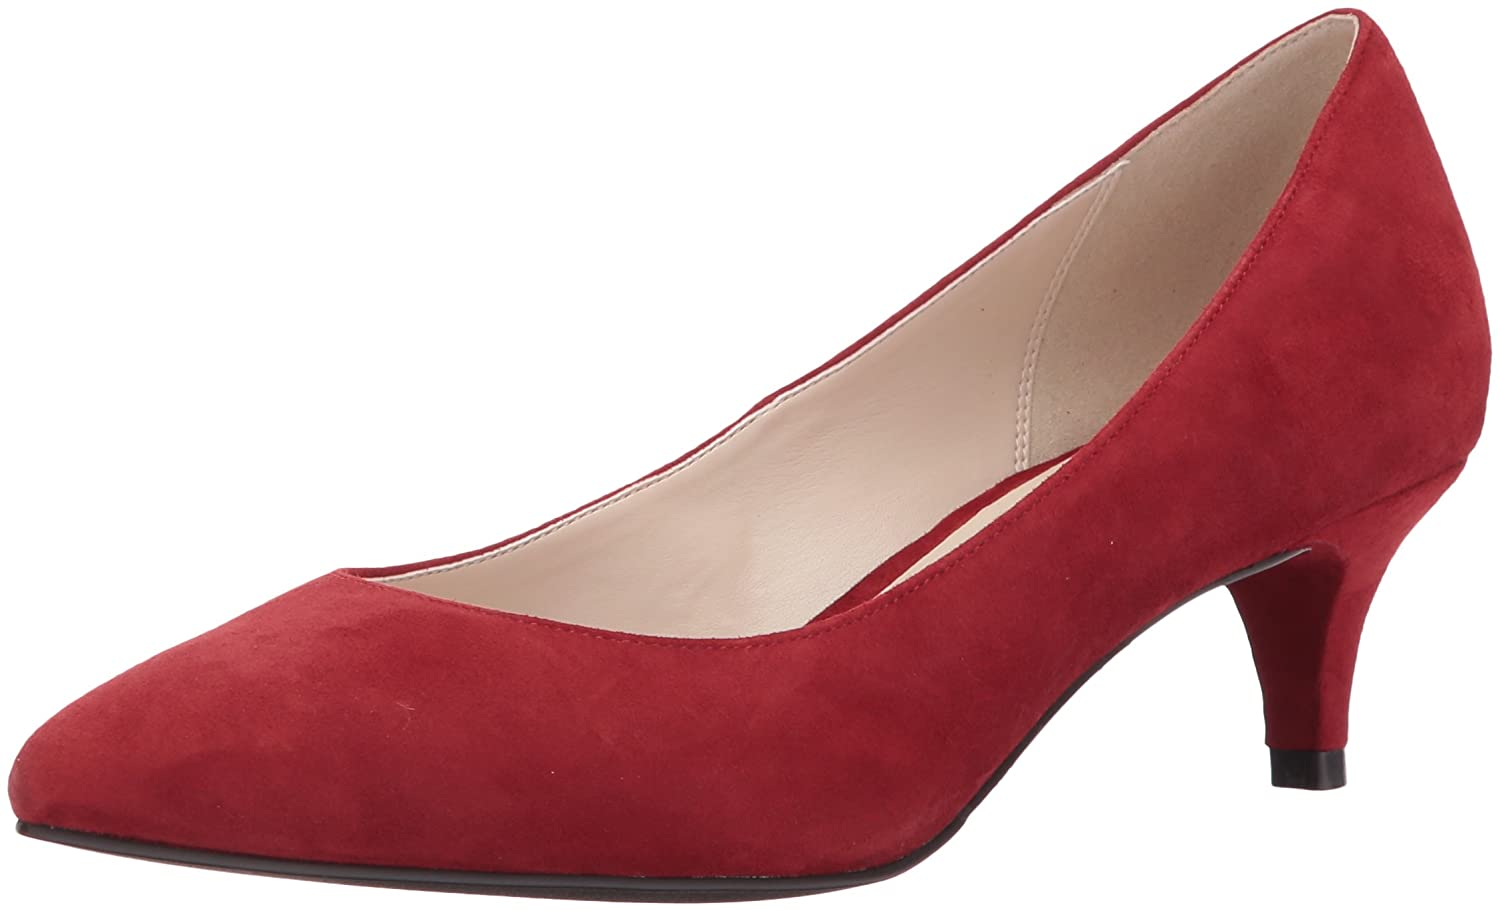 Cole Haan Women's Juliana 45 Pump B074CK2TZB 6 B(M) US|Bordeaux Suede